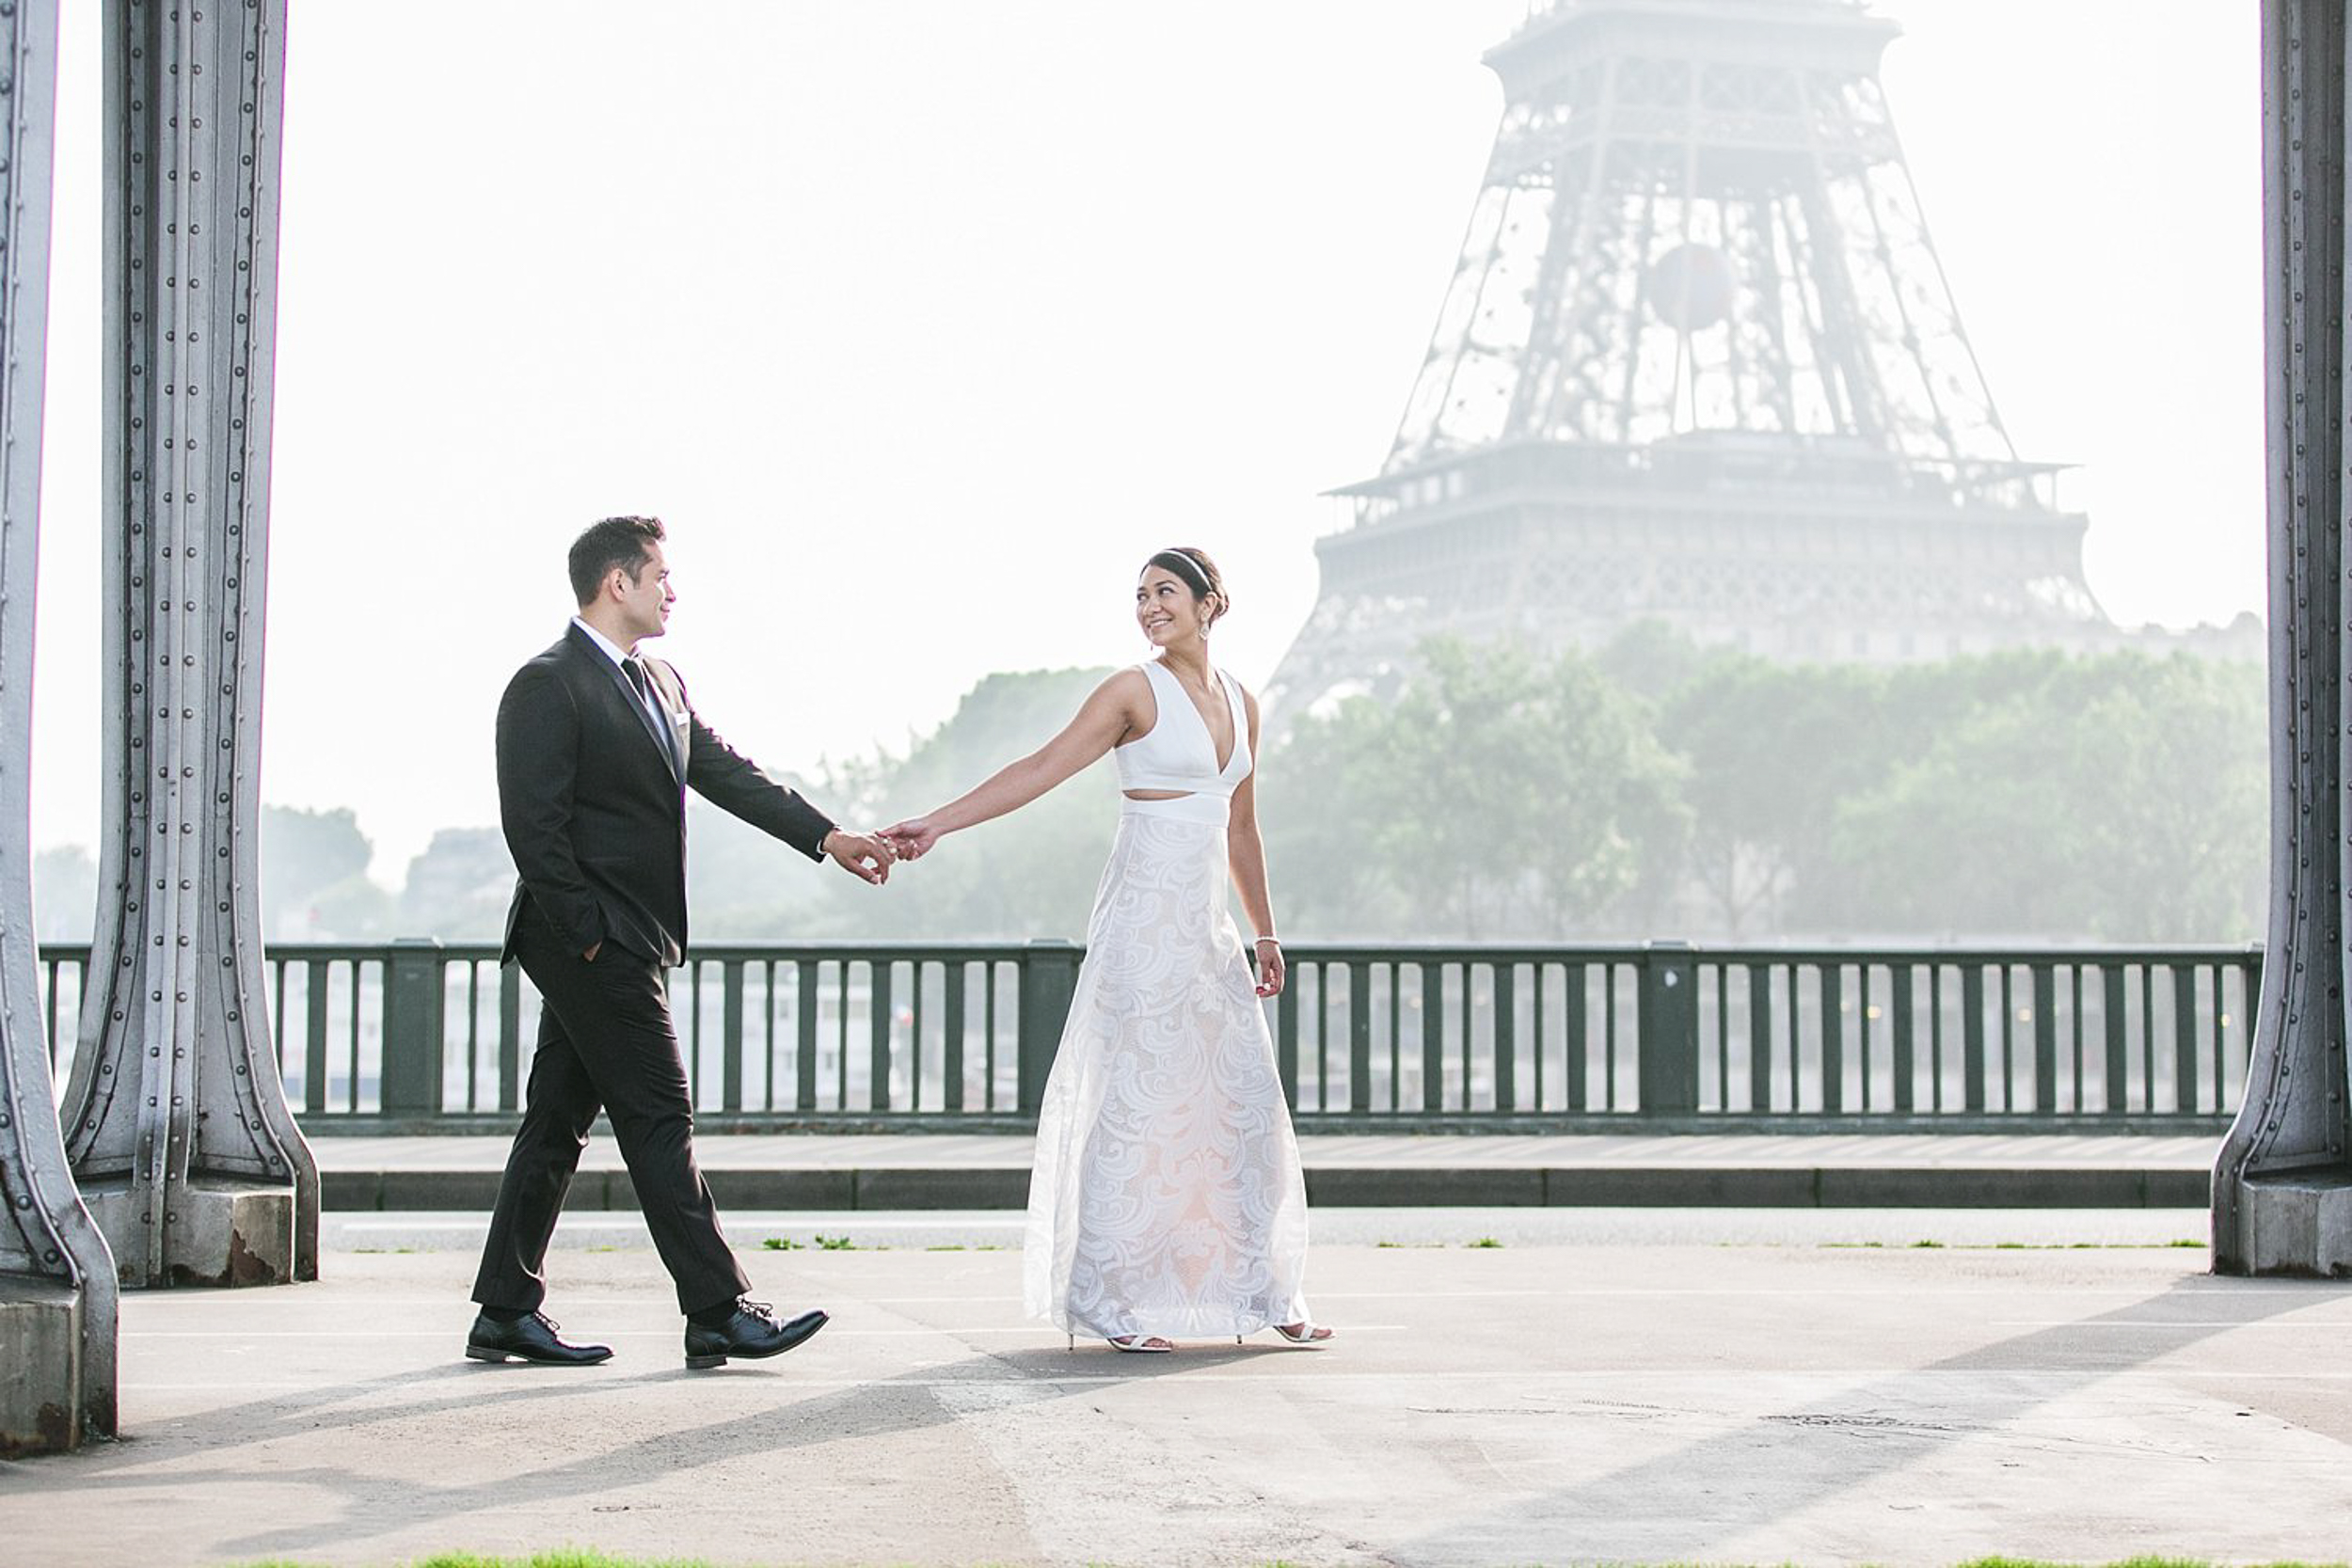 english-speaking-wedding-elopement-photographer-paris-france-321.jpg